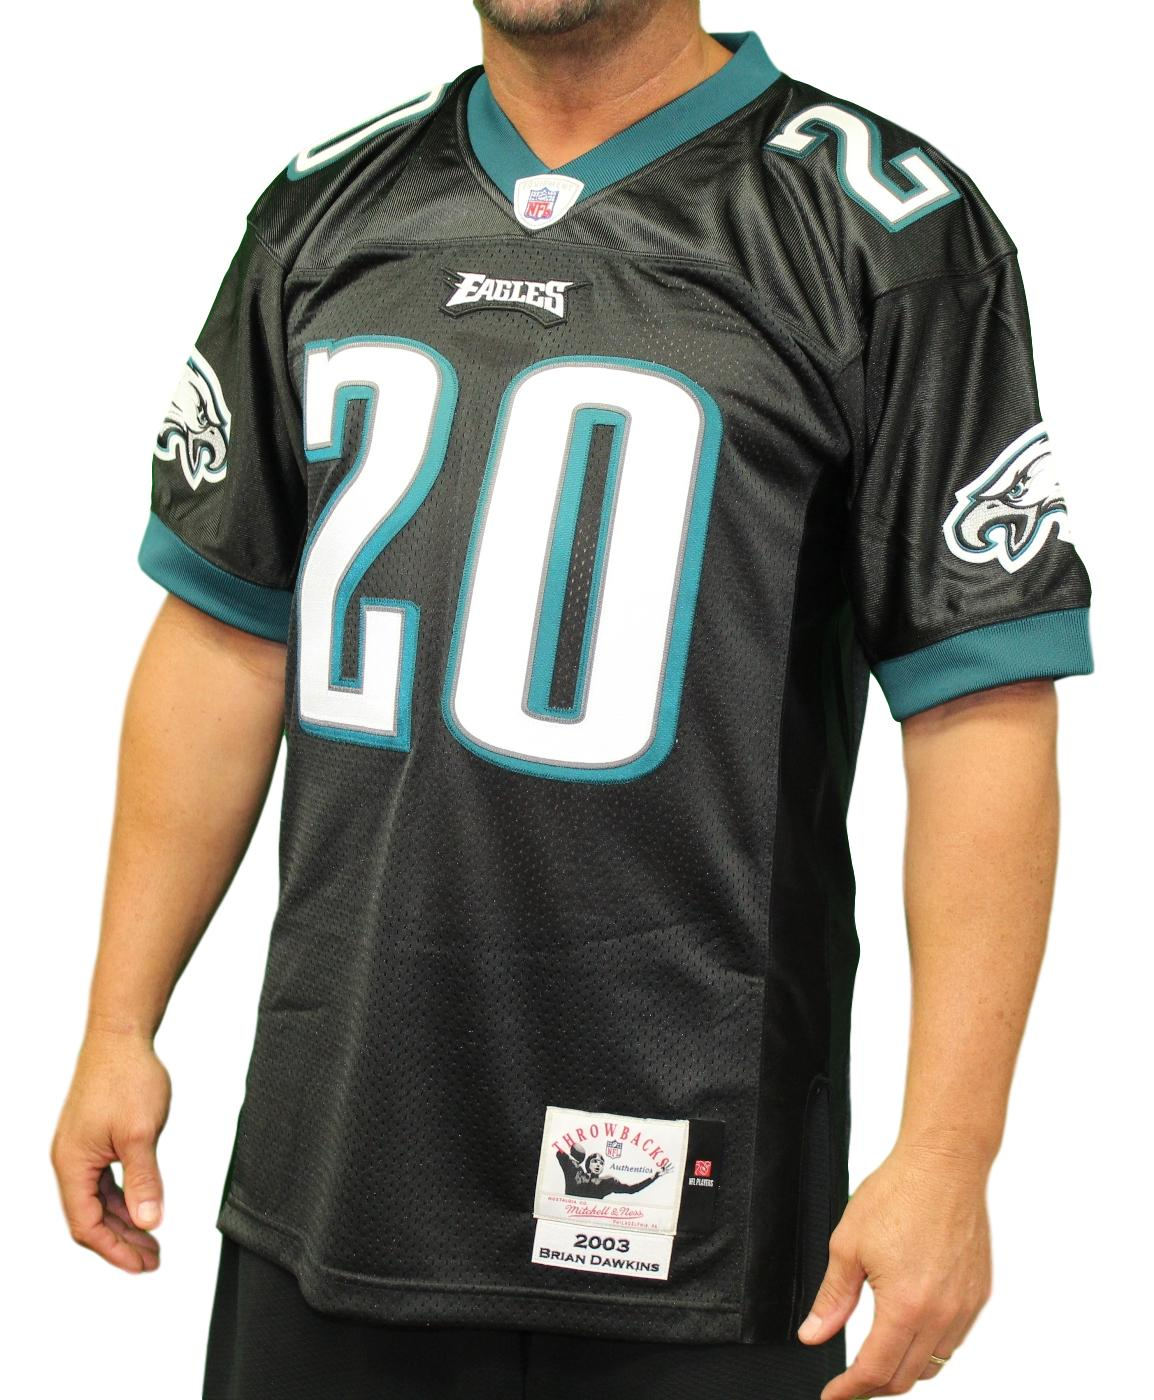 Brian Dawkins Philadelphia Eagles NFL Mitchell & Ness Authentic 2003 Jersey